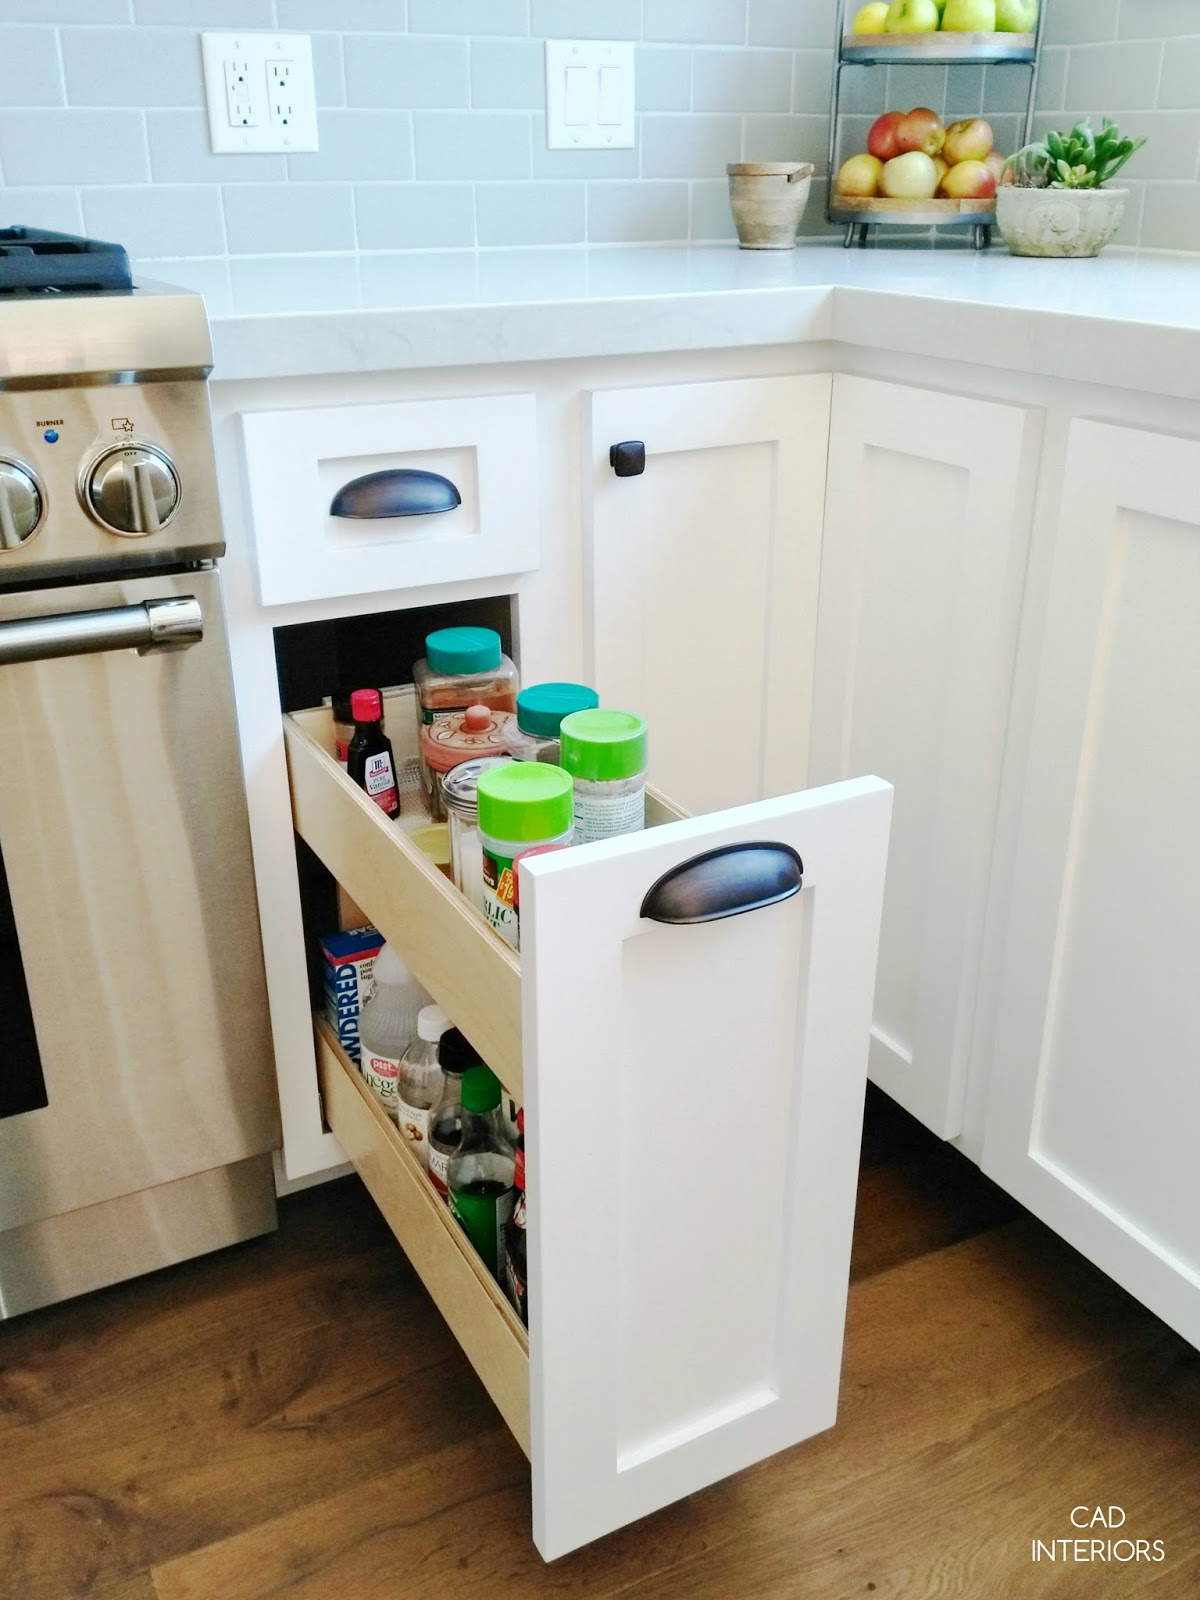 how we filled narrow kitchen cabinet skinny kitchen cabinet kitchen storage solutions ideas built in pull out interior design remodel CAD INTERIORS kitchen renovation